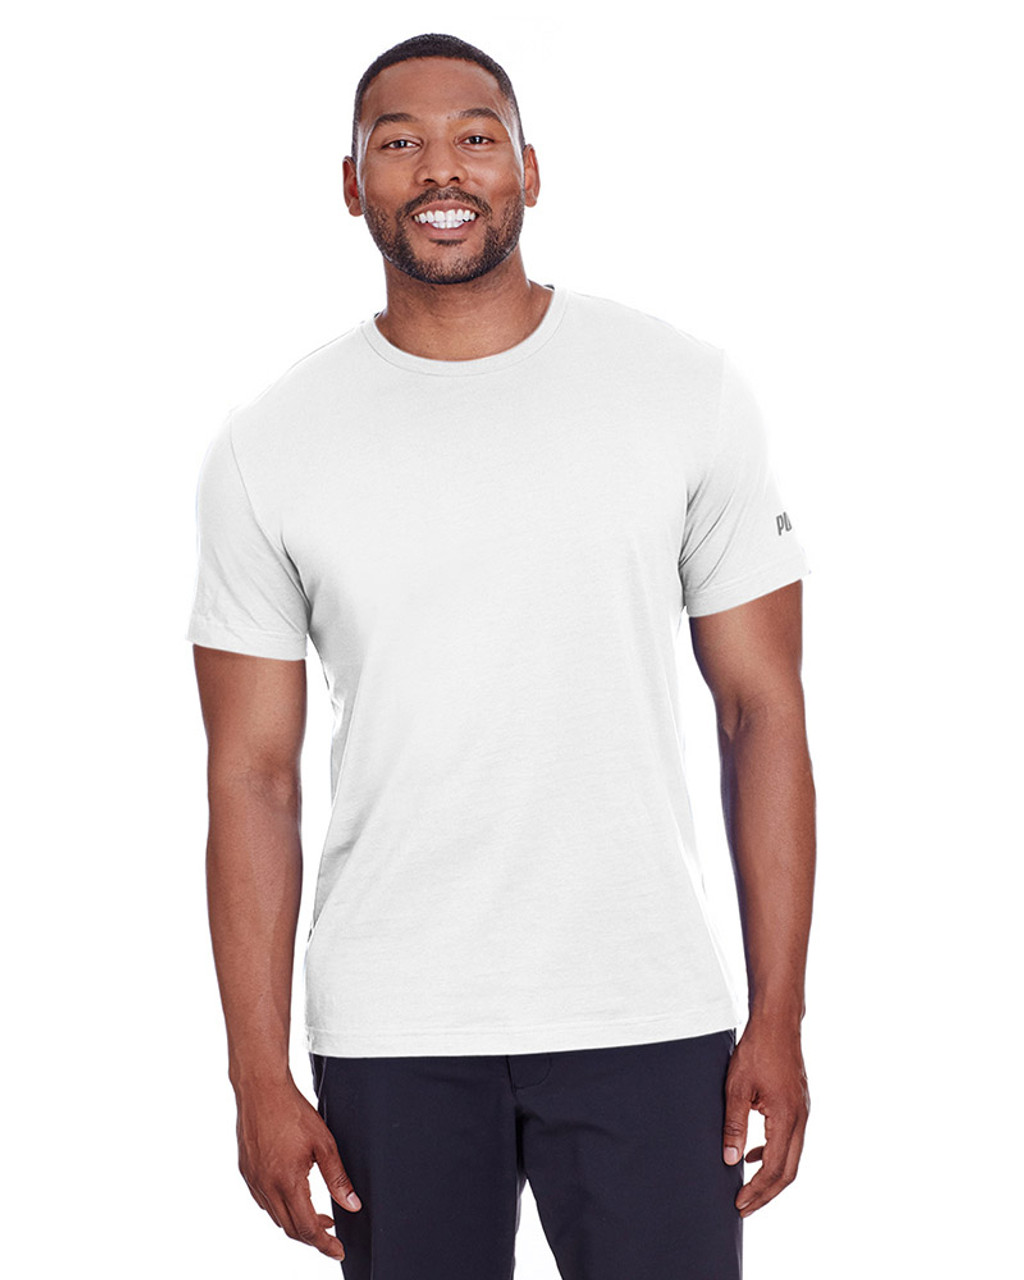 Puma White/Quiet Shade - 582006 Puma Sport Essential Adult Logo T-Shirt | BlankClothing